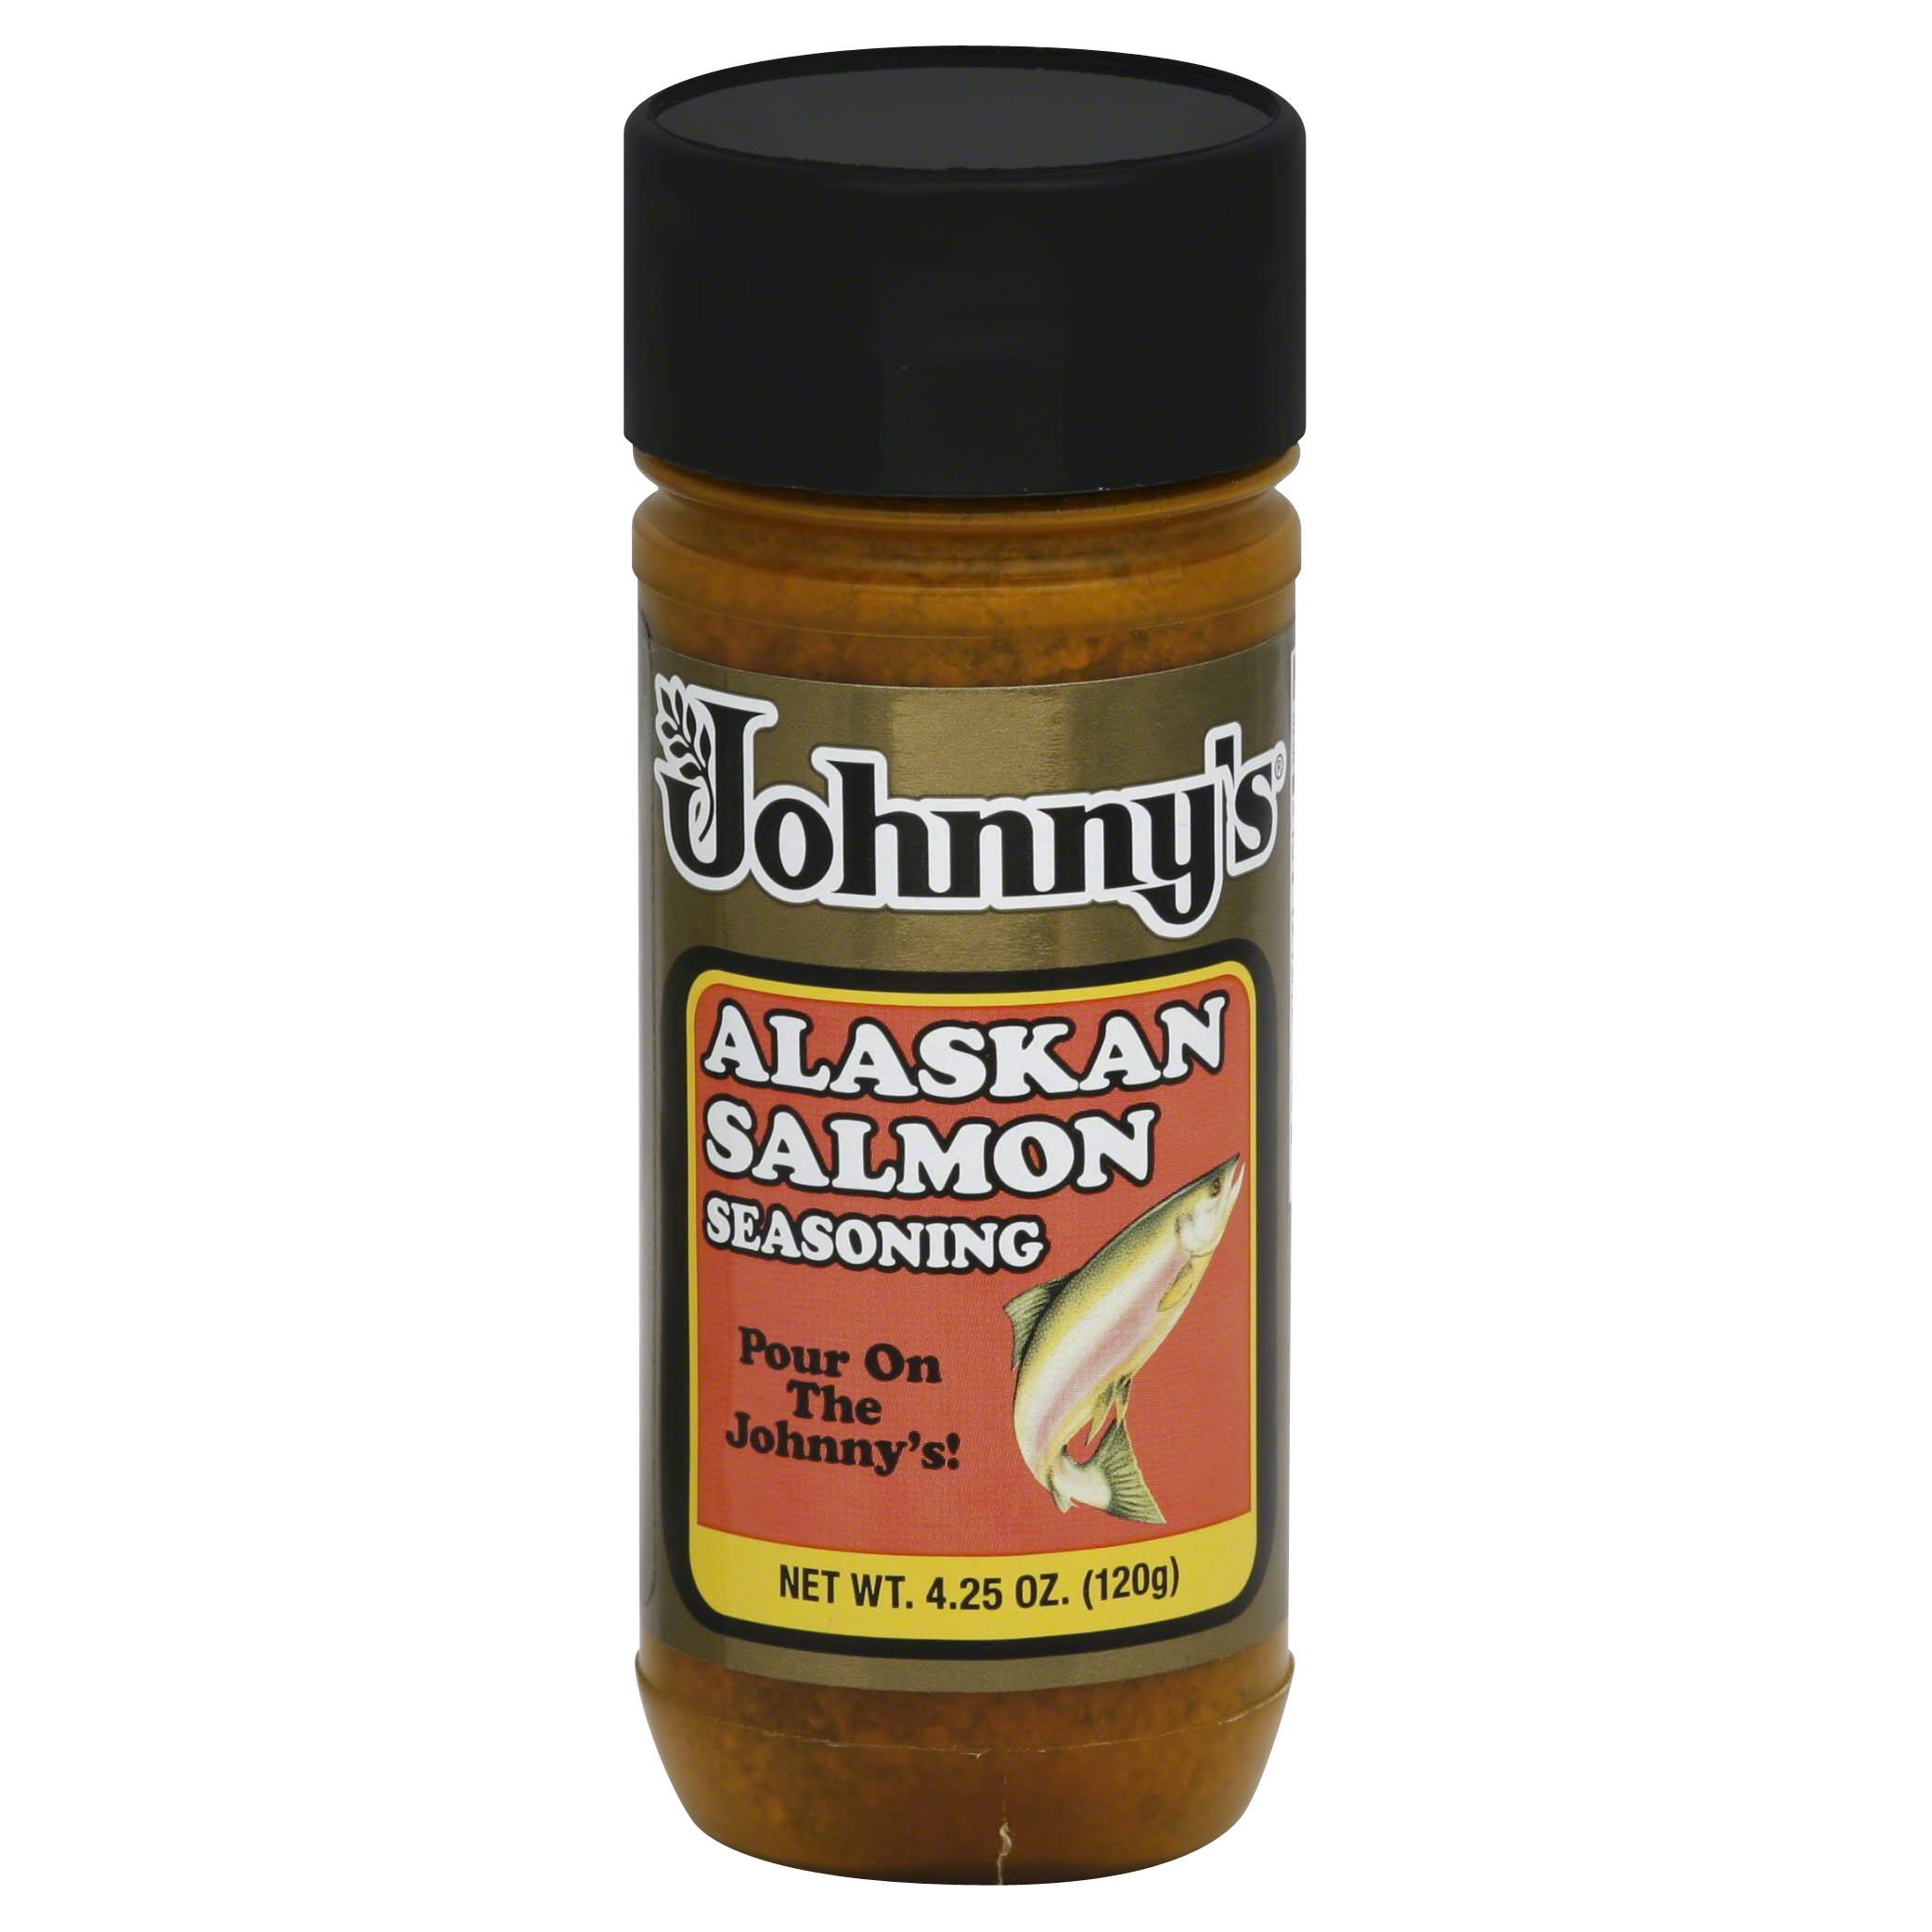 Johnnys Seasoning, Alaskan Salmon - 4.25 oz